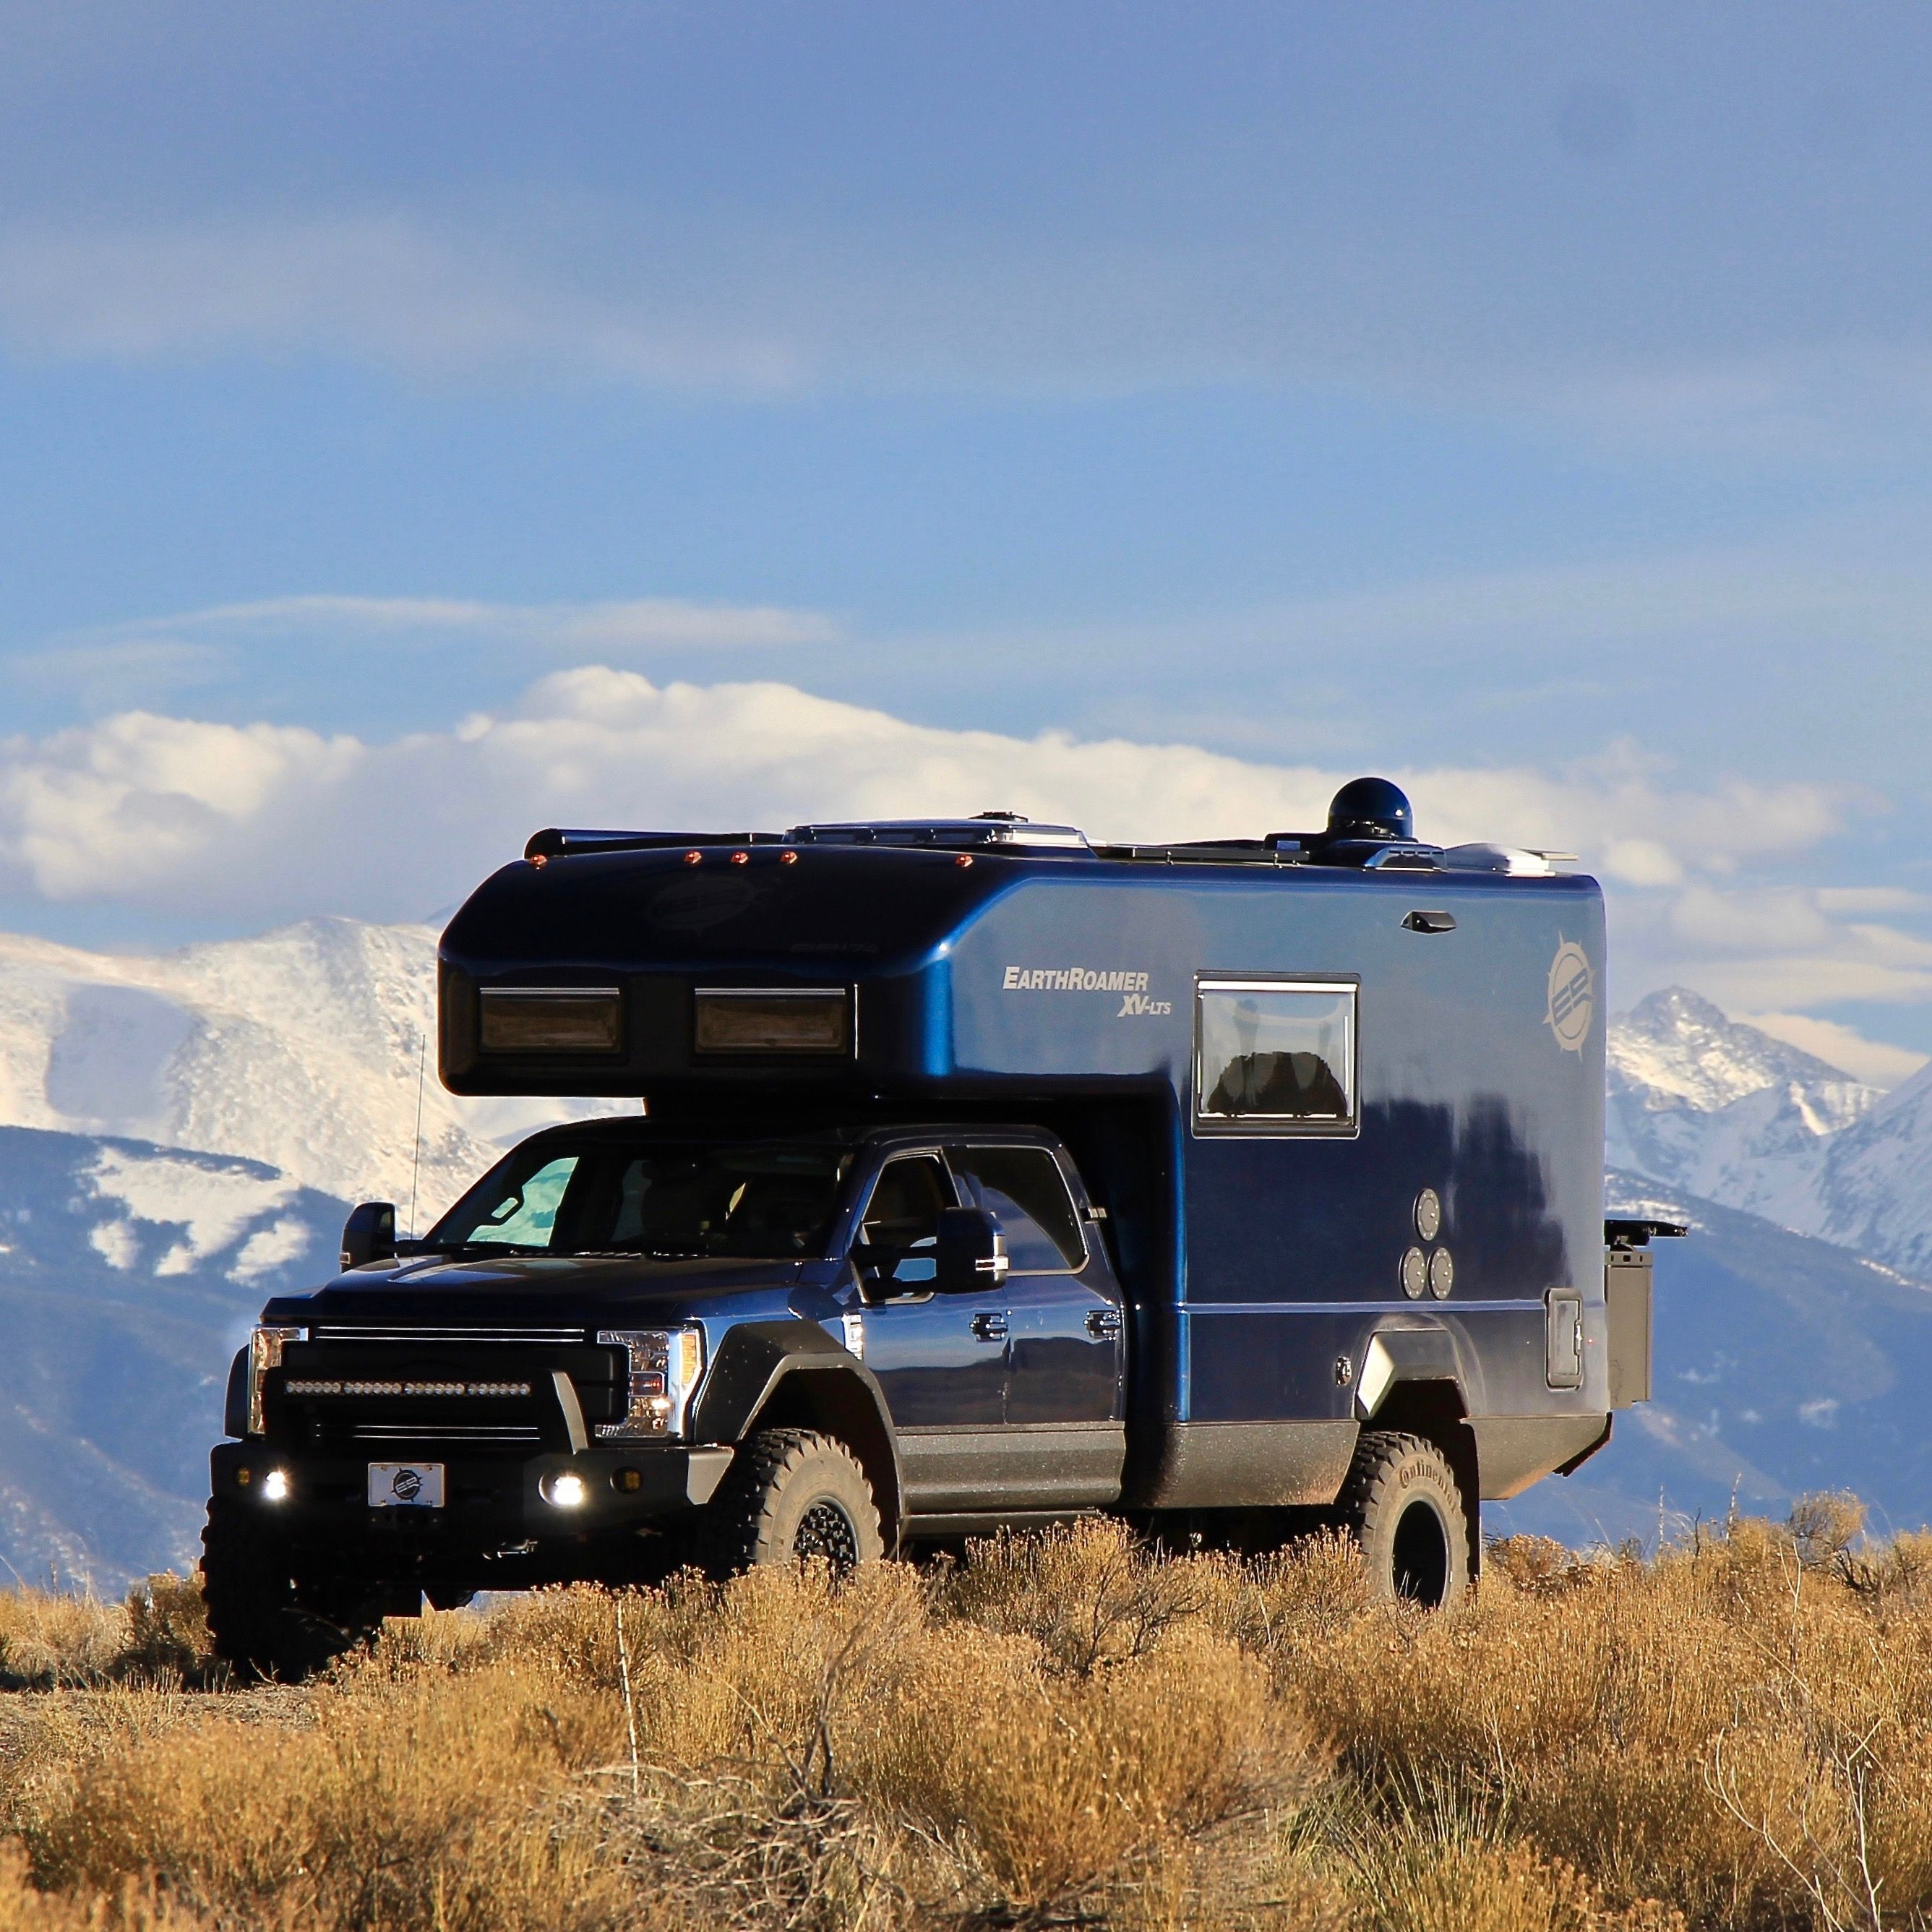 Lts Earthroamer S Best Selling Expedition Vehicle With Images